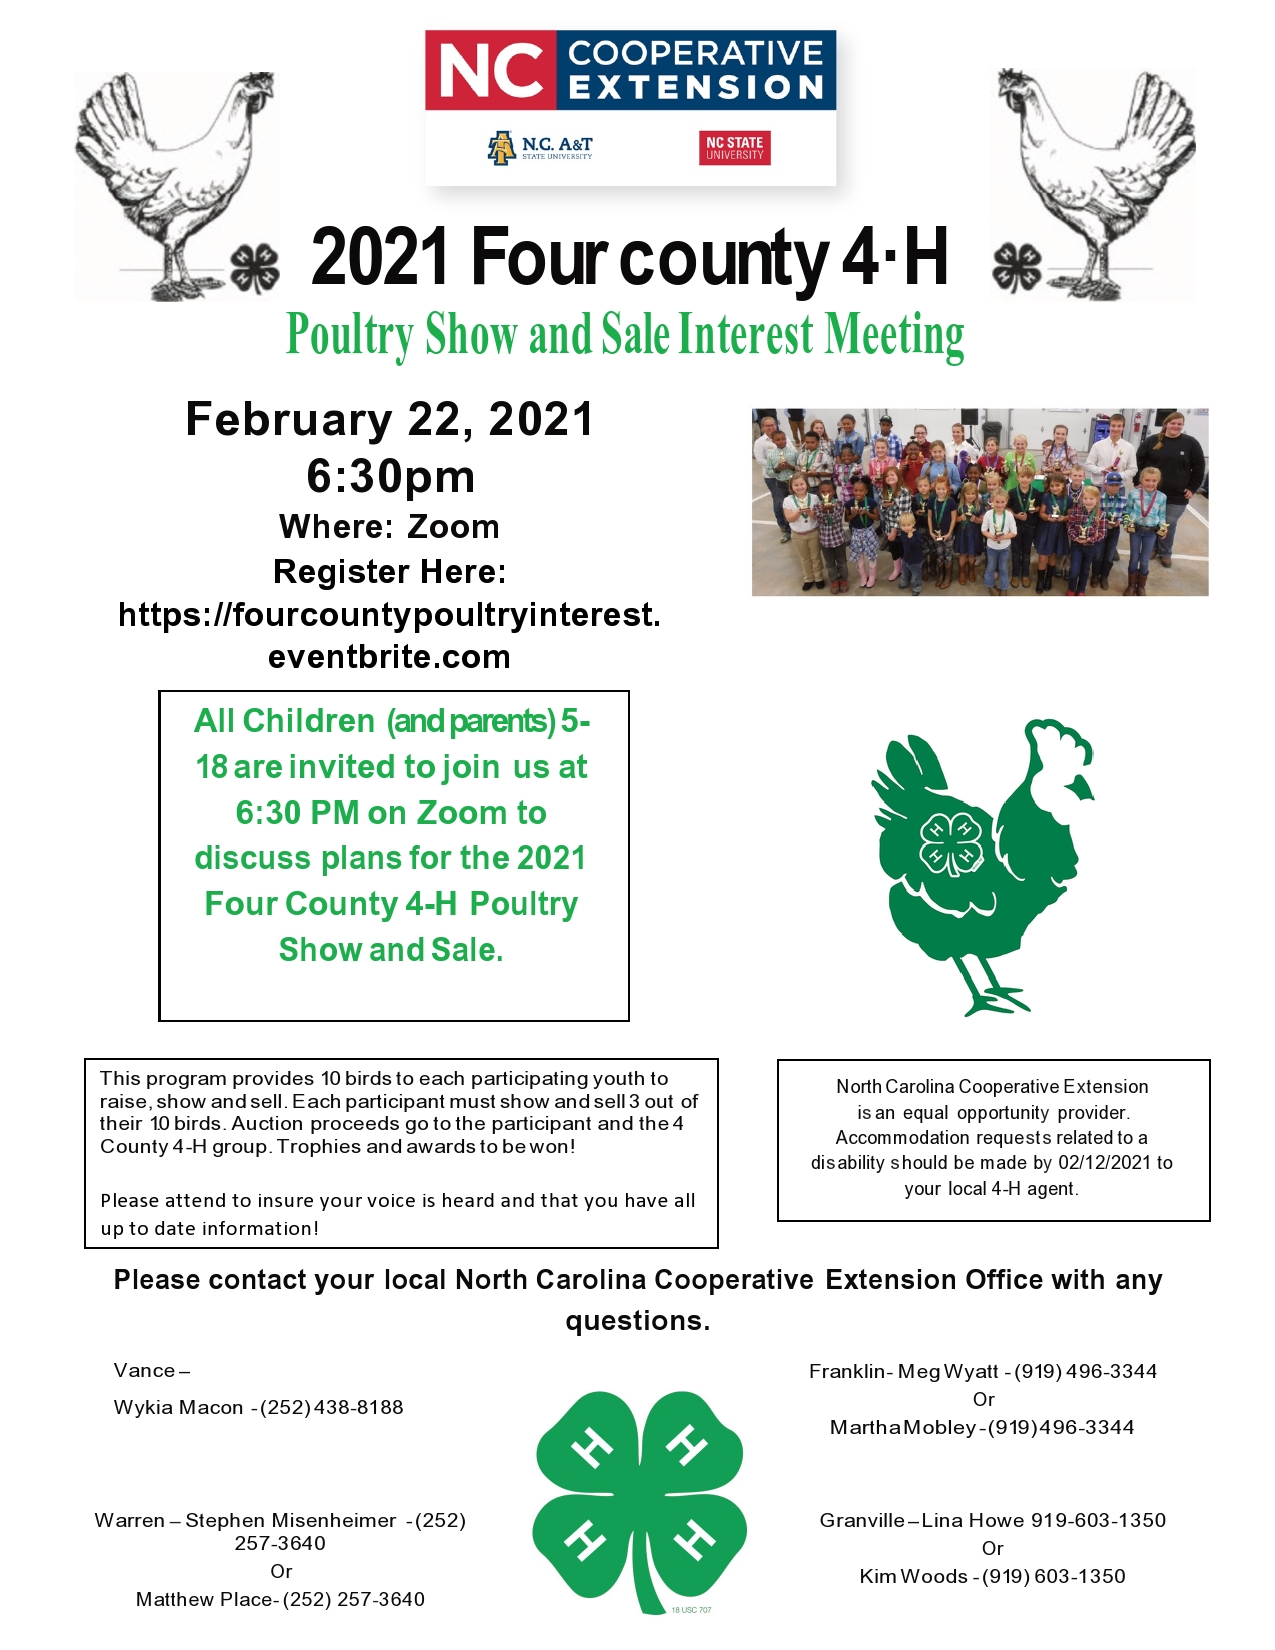 Four County 4-H Poultry Show and Sale flyer